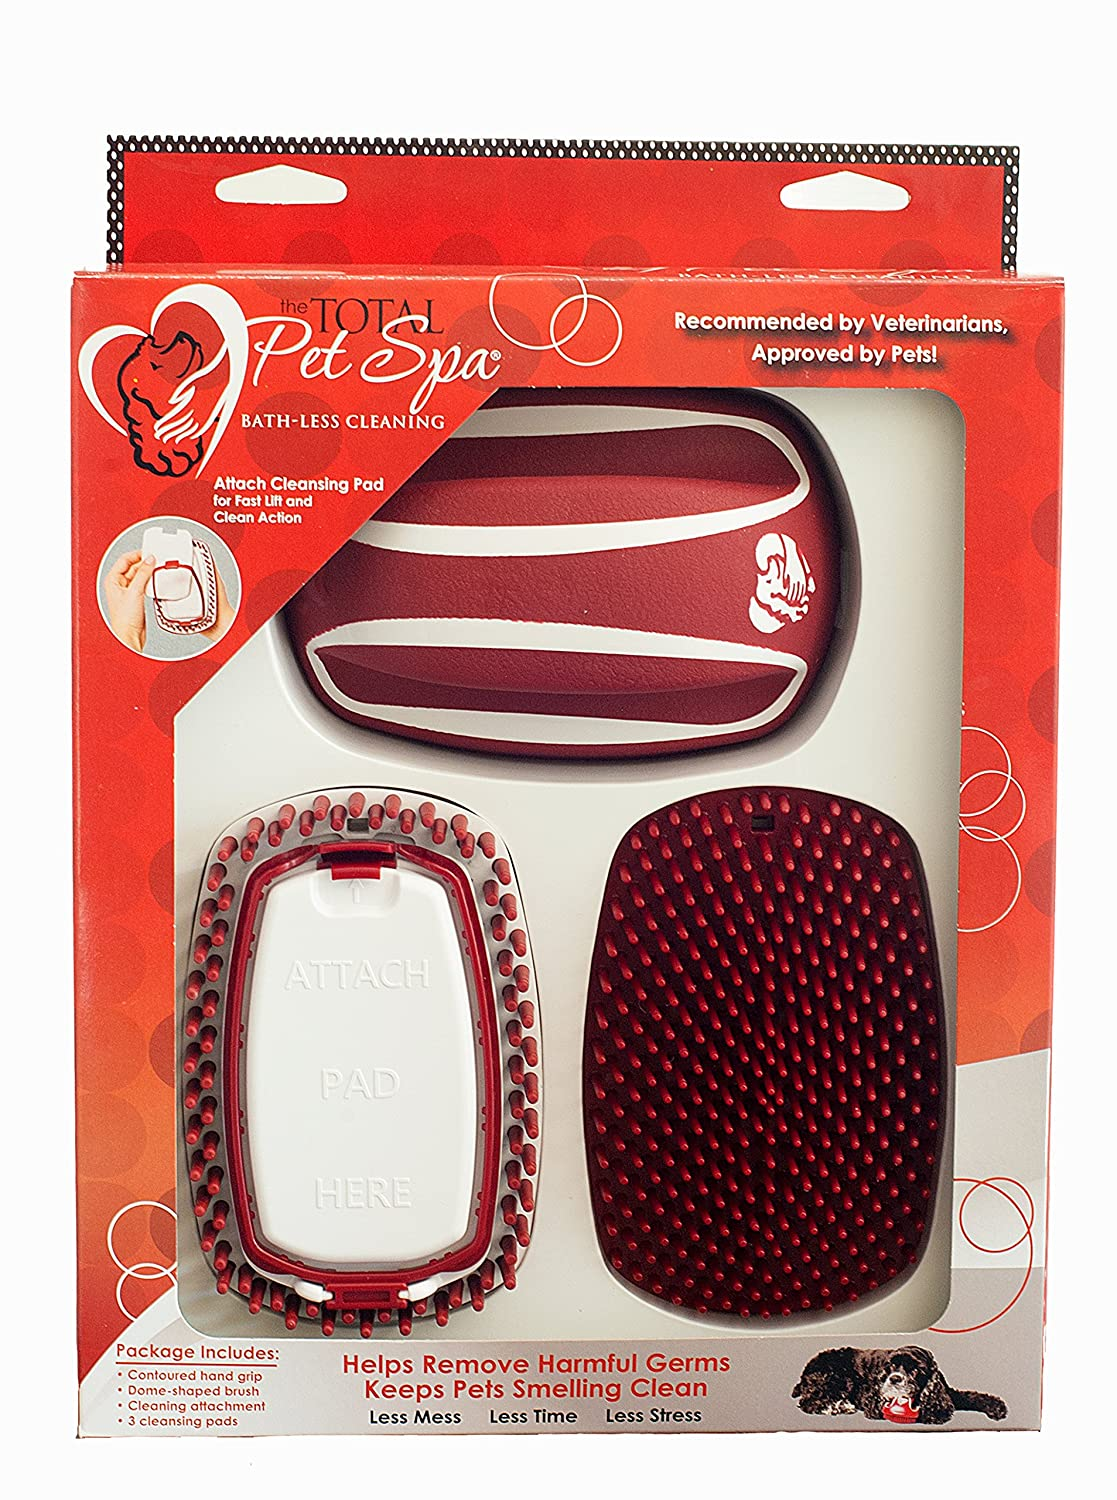 Total Pet Spa Bath-Less Cleaning Kit Give your dog or cat a bath WITHOUT using water